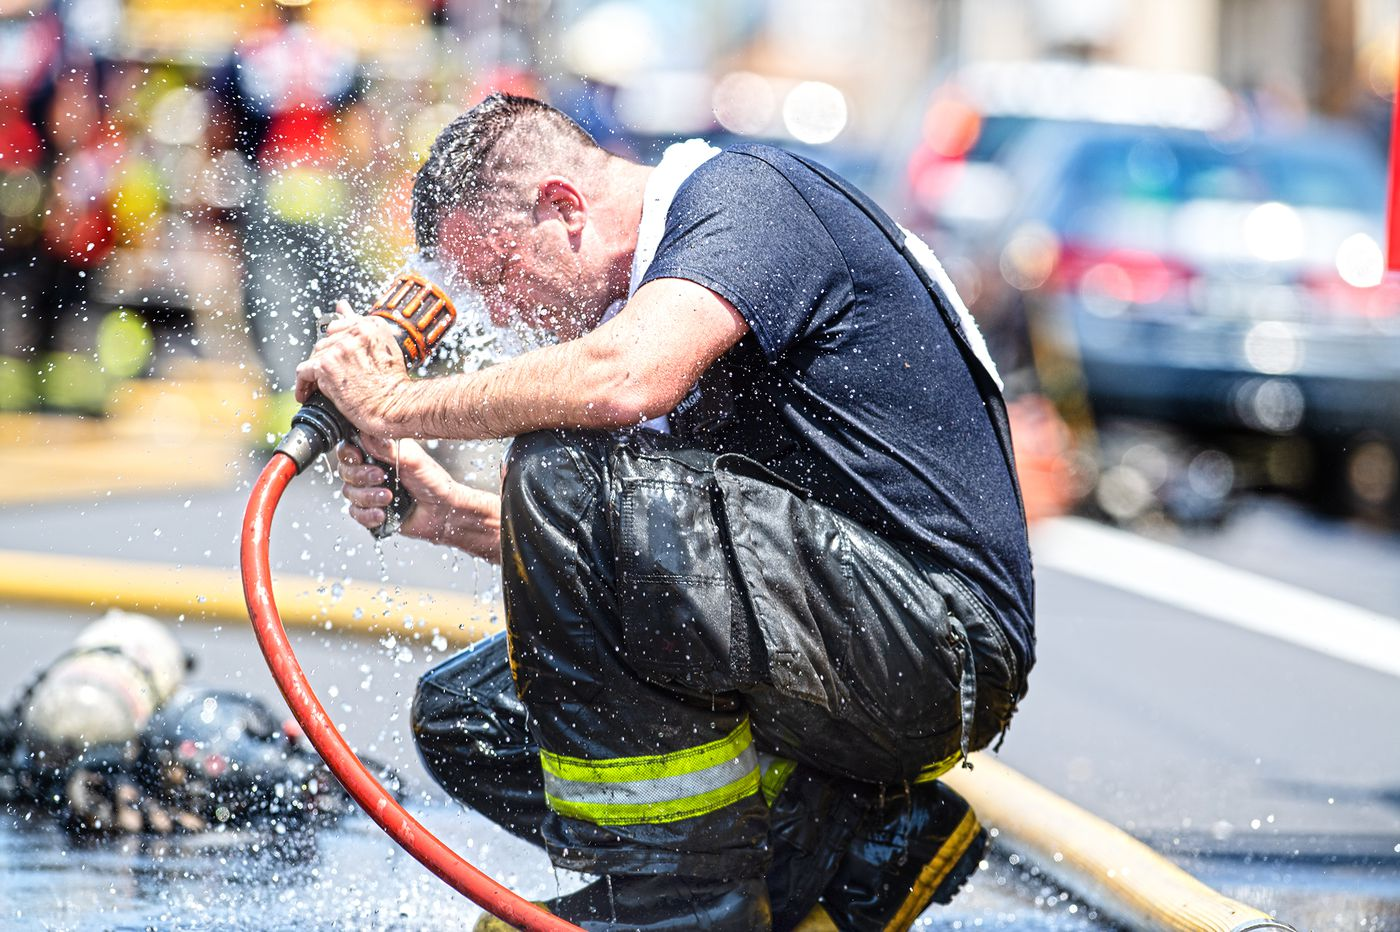 Firefighter cools off after a long day in the sun